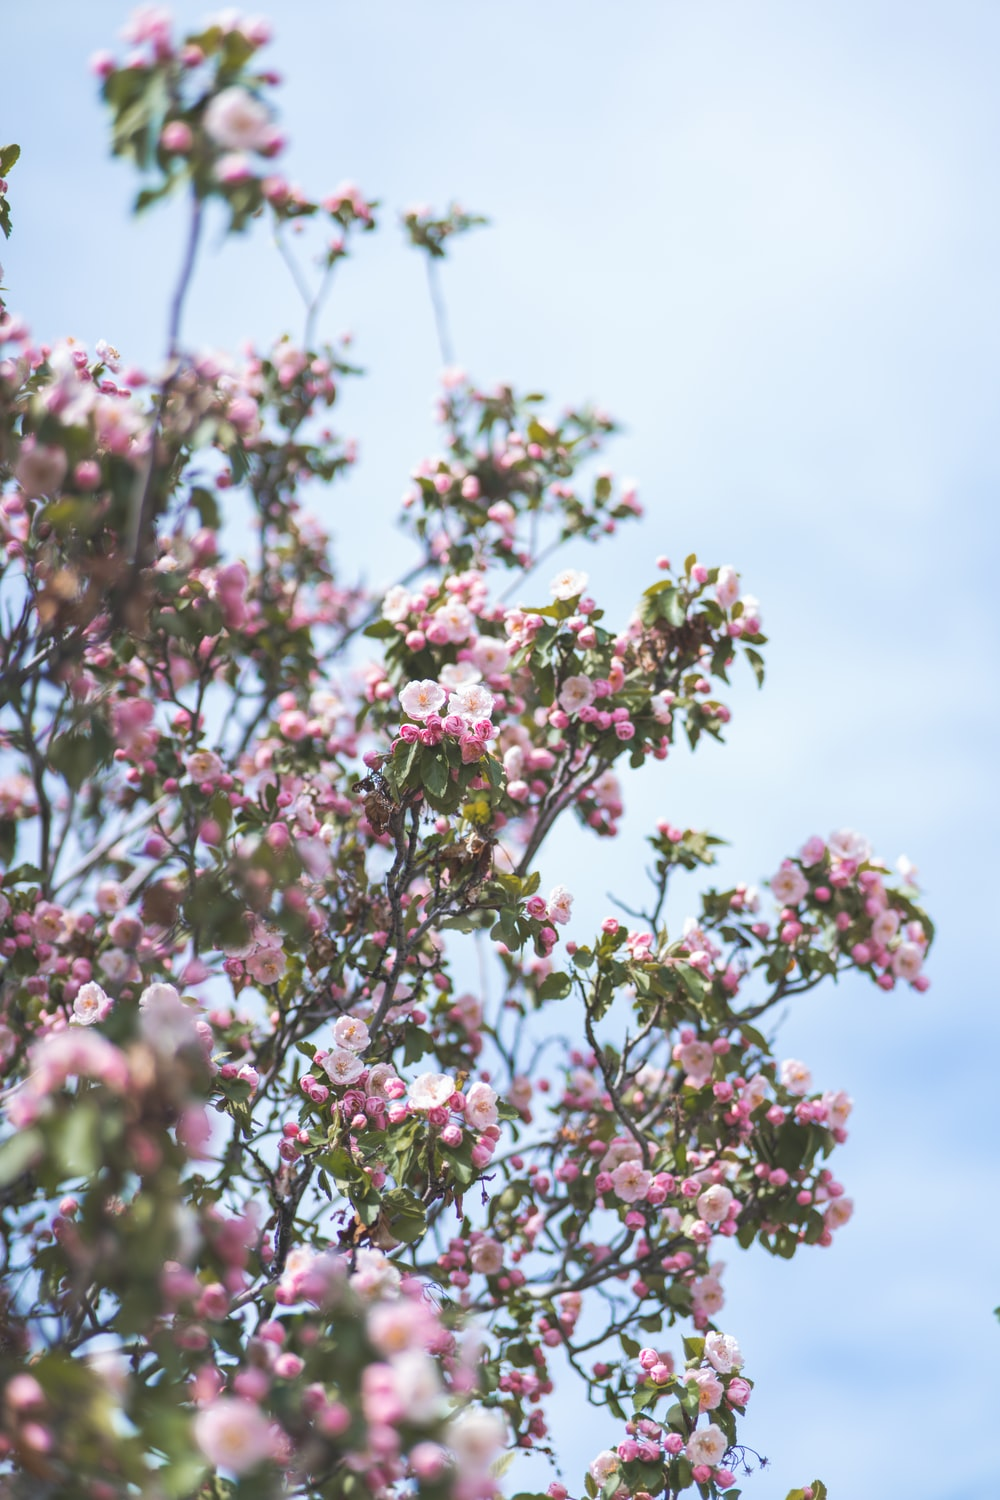 pink flowers with green leaves under blue sky and white clouds during daytime